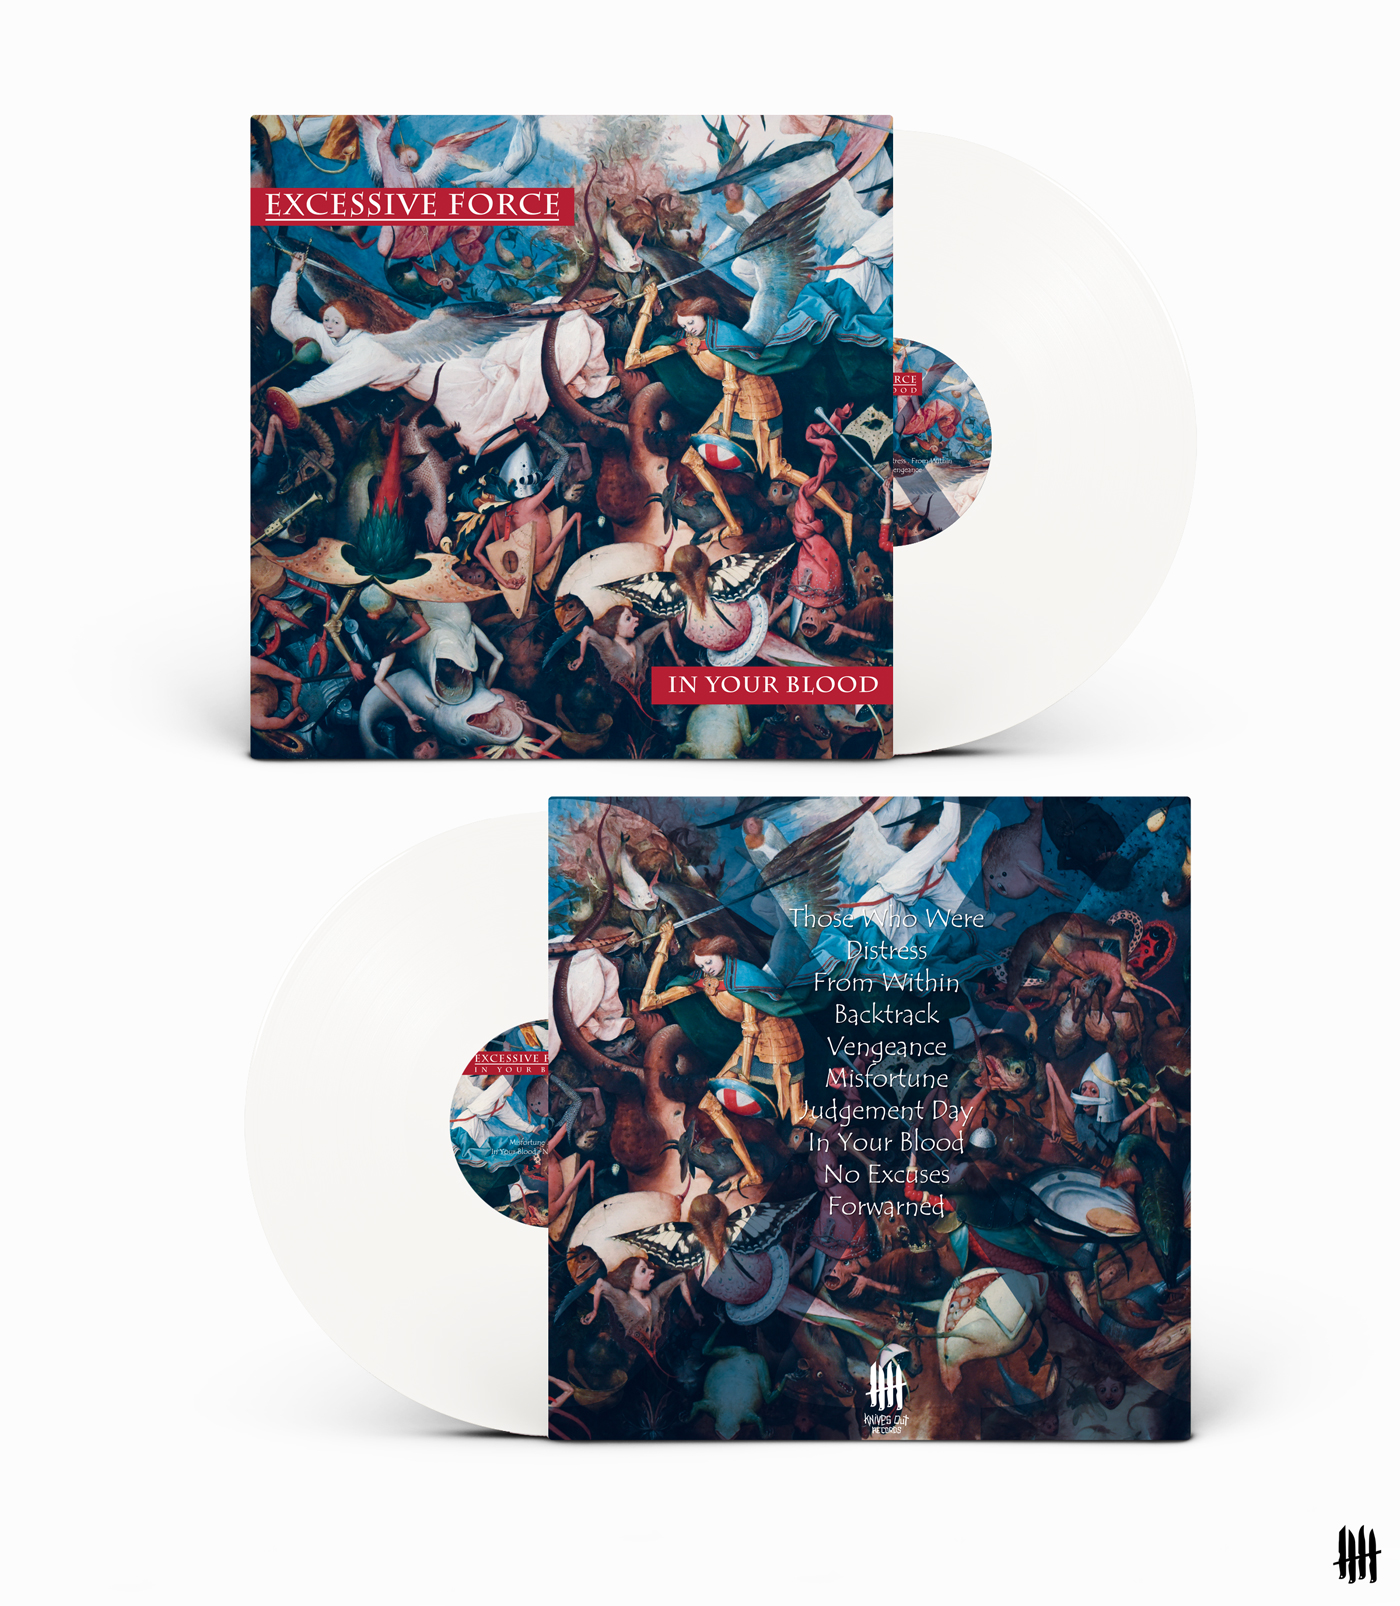 EXCESSIVE FORCE In Your Blood white vinyl